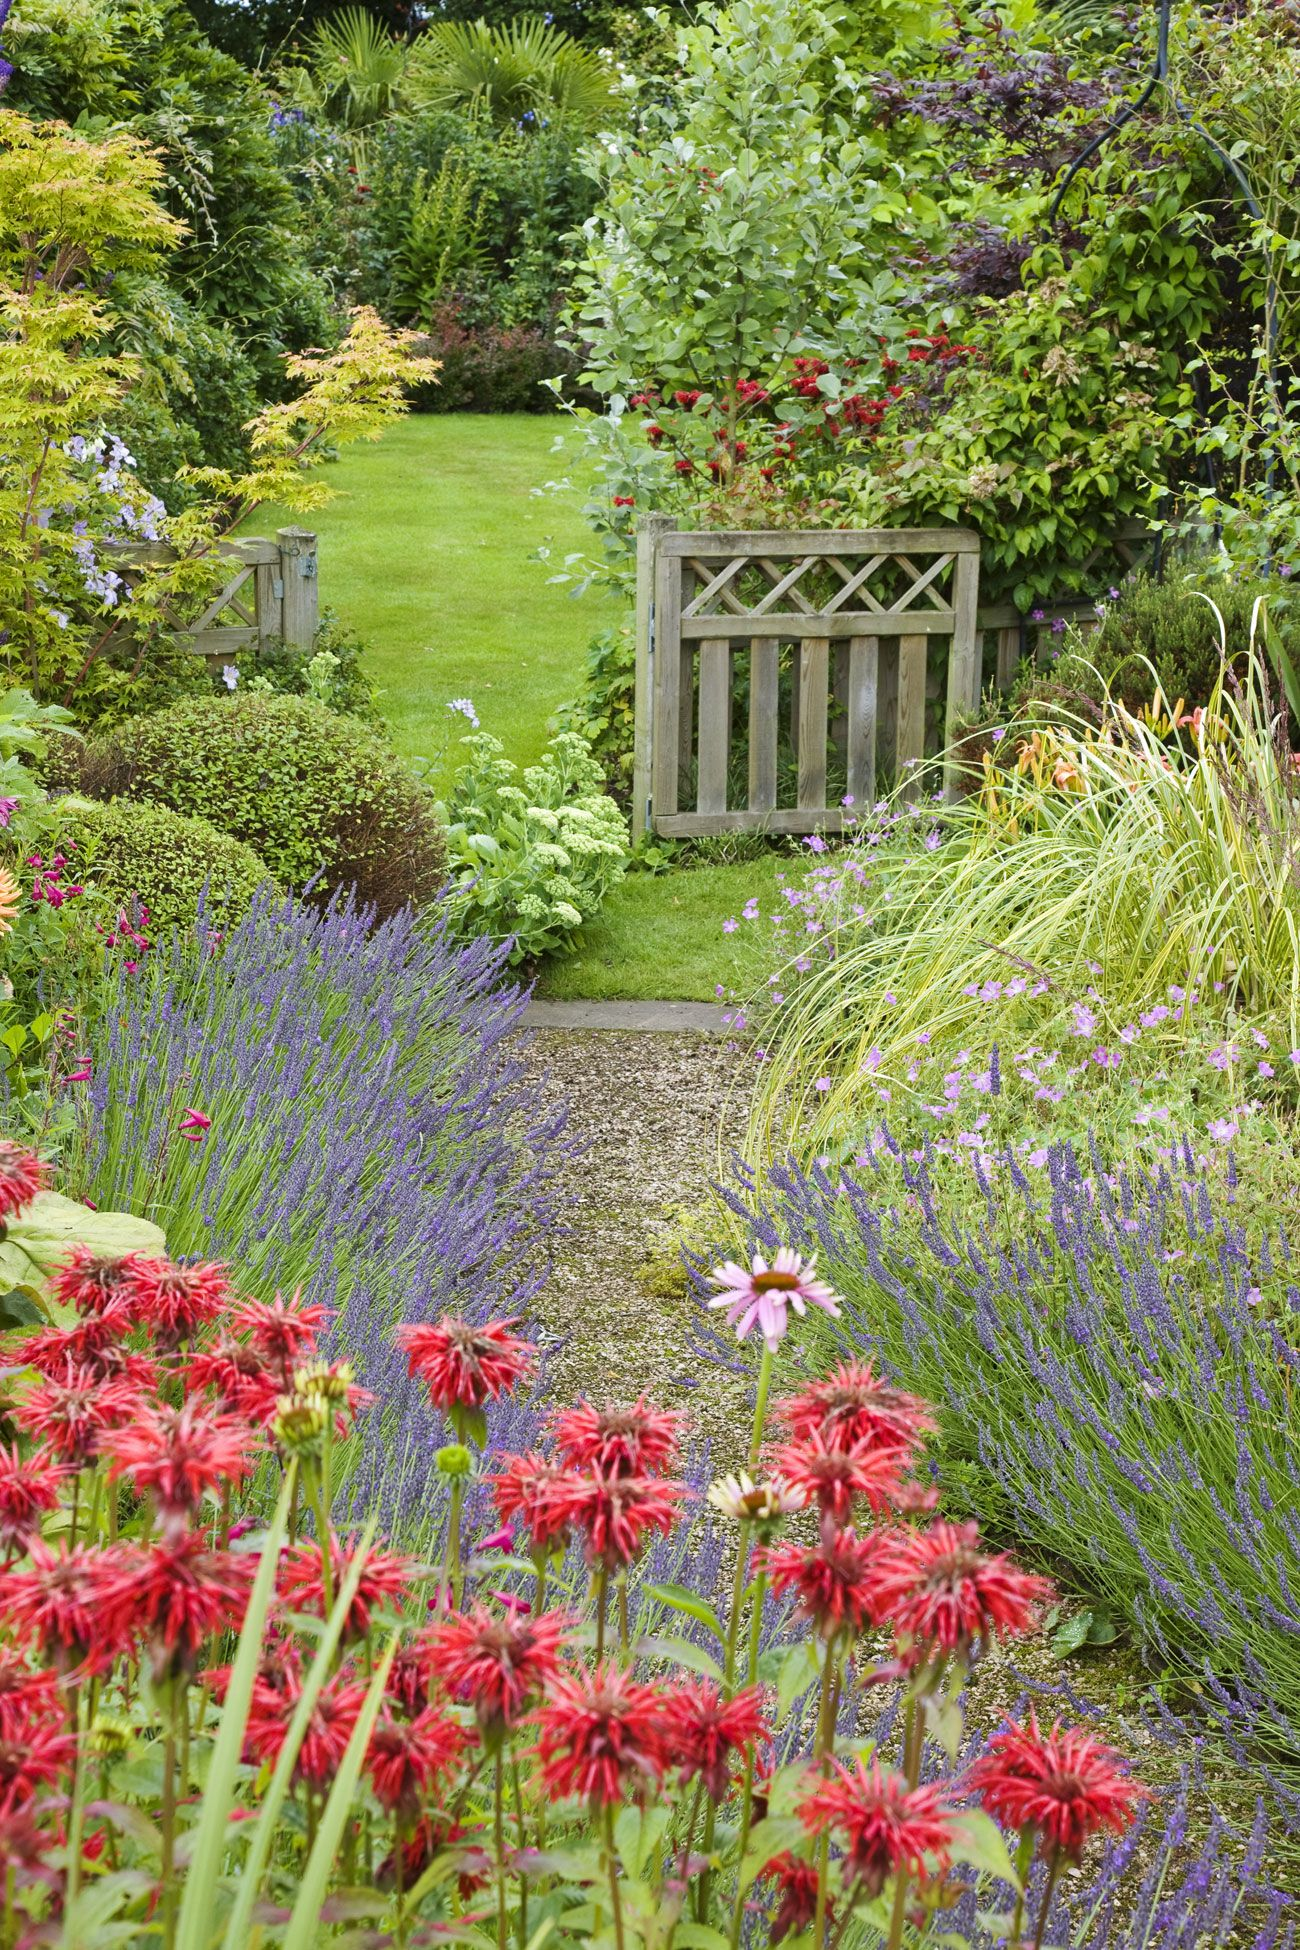 Cottage Style Garden Ideas a blog for passionate gardeners with an emphasis on the quaint english cottage garden style 9 Lovely Ways To Make A Cottage Style Garden